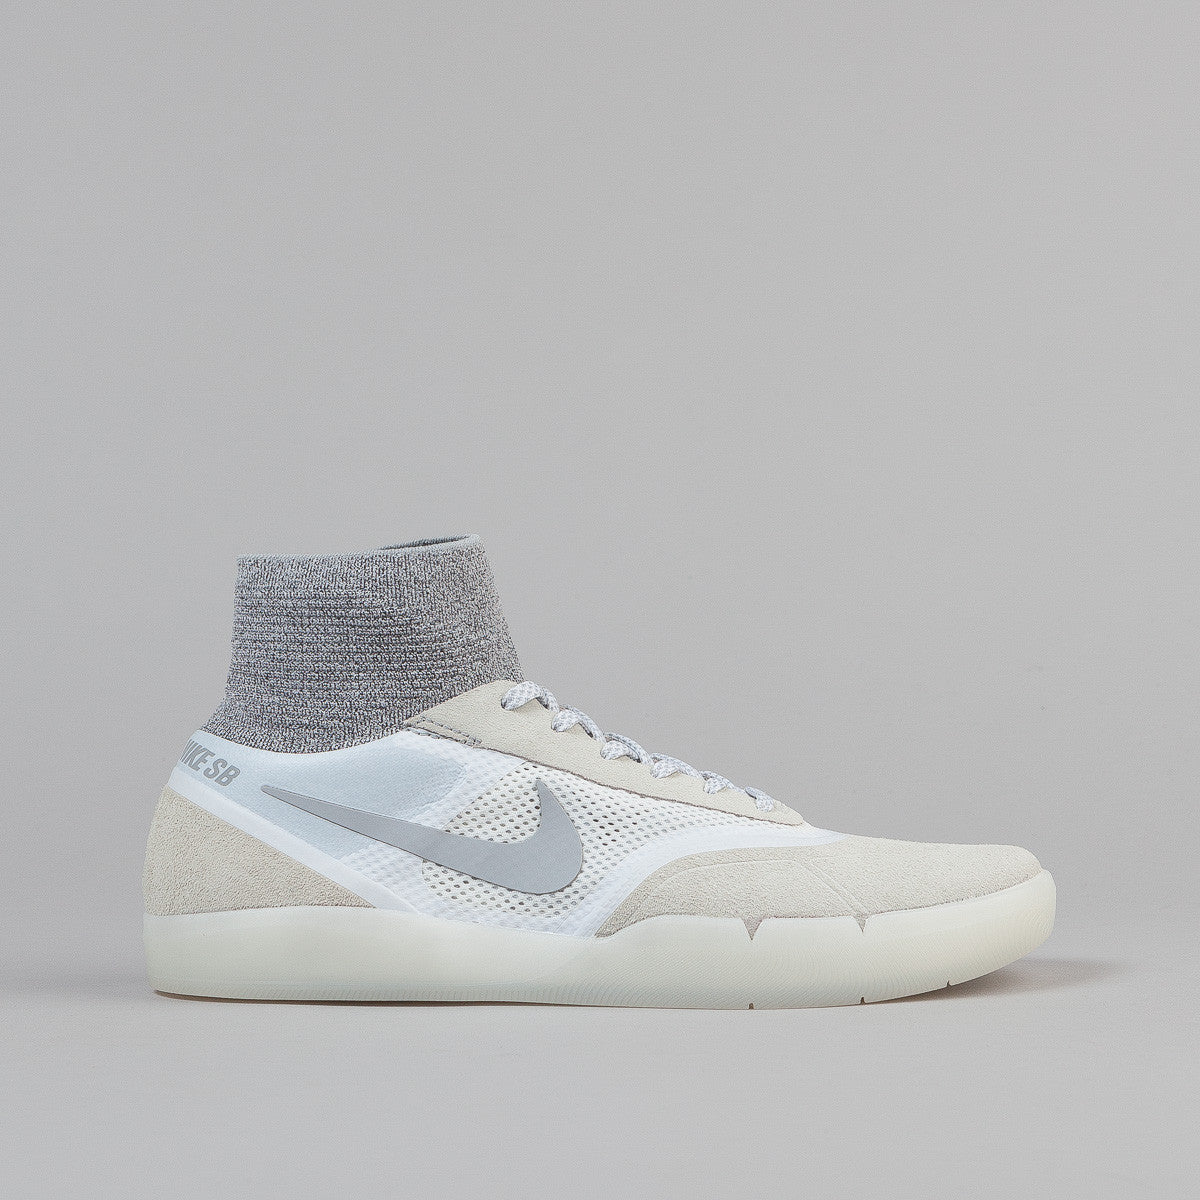 Nike SB Koston 3 Hyperfeel Shoes - Summit White/Wolf Grey - White | Flatspot